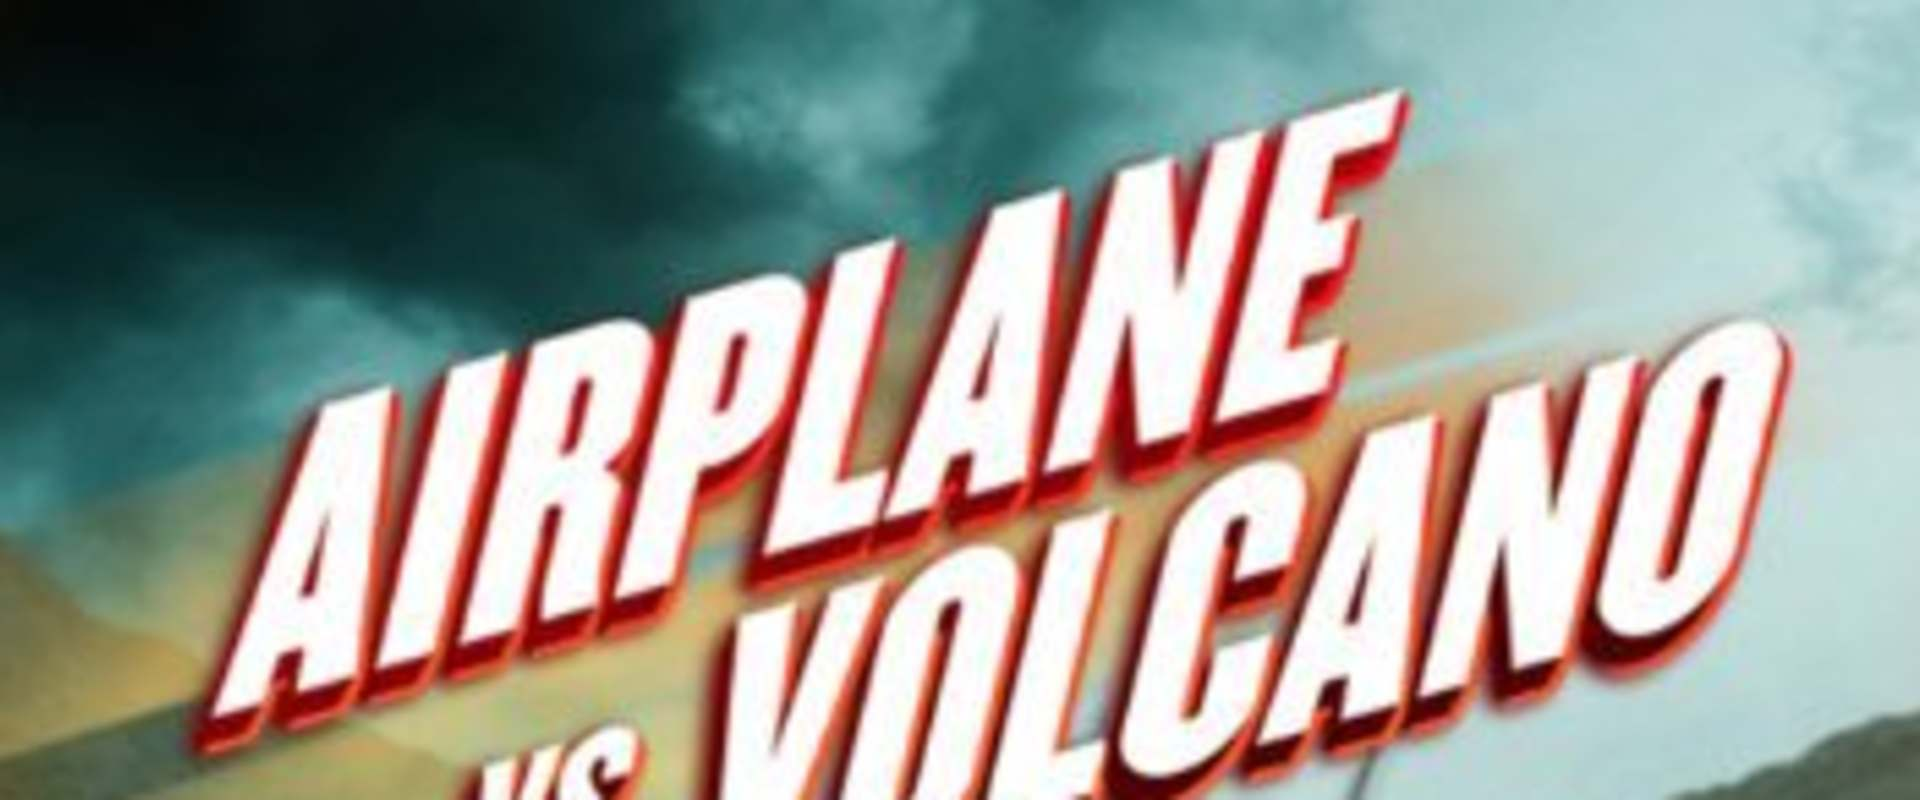 Airplane vs. Volcano background 2